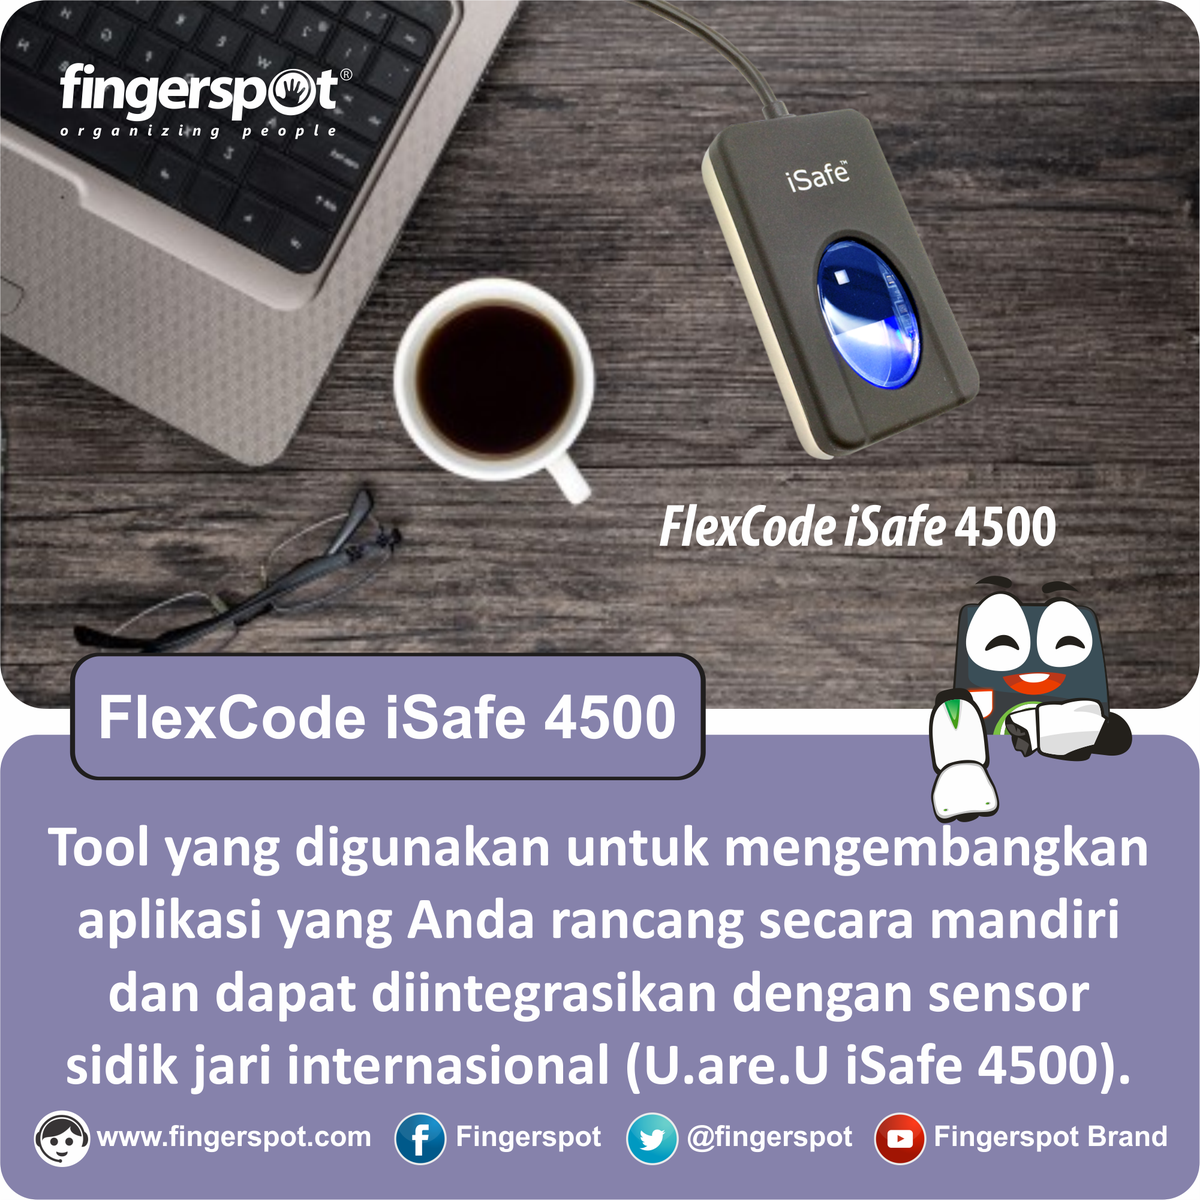 Fingerspot Flexcode Isafe 4500 Sensor Fingerprint Dan Sdk Cek Neo 151nc Alat Absensi Sidik Jari Terbaik Terpercaya You Should Use For Developing Your Own Attendance Software Check This Out On